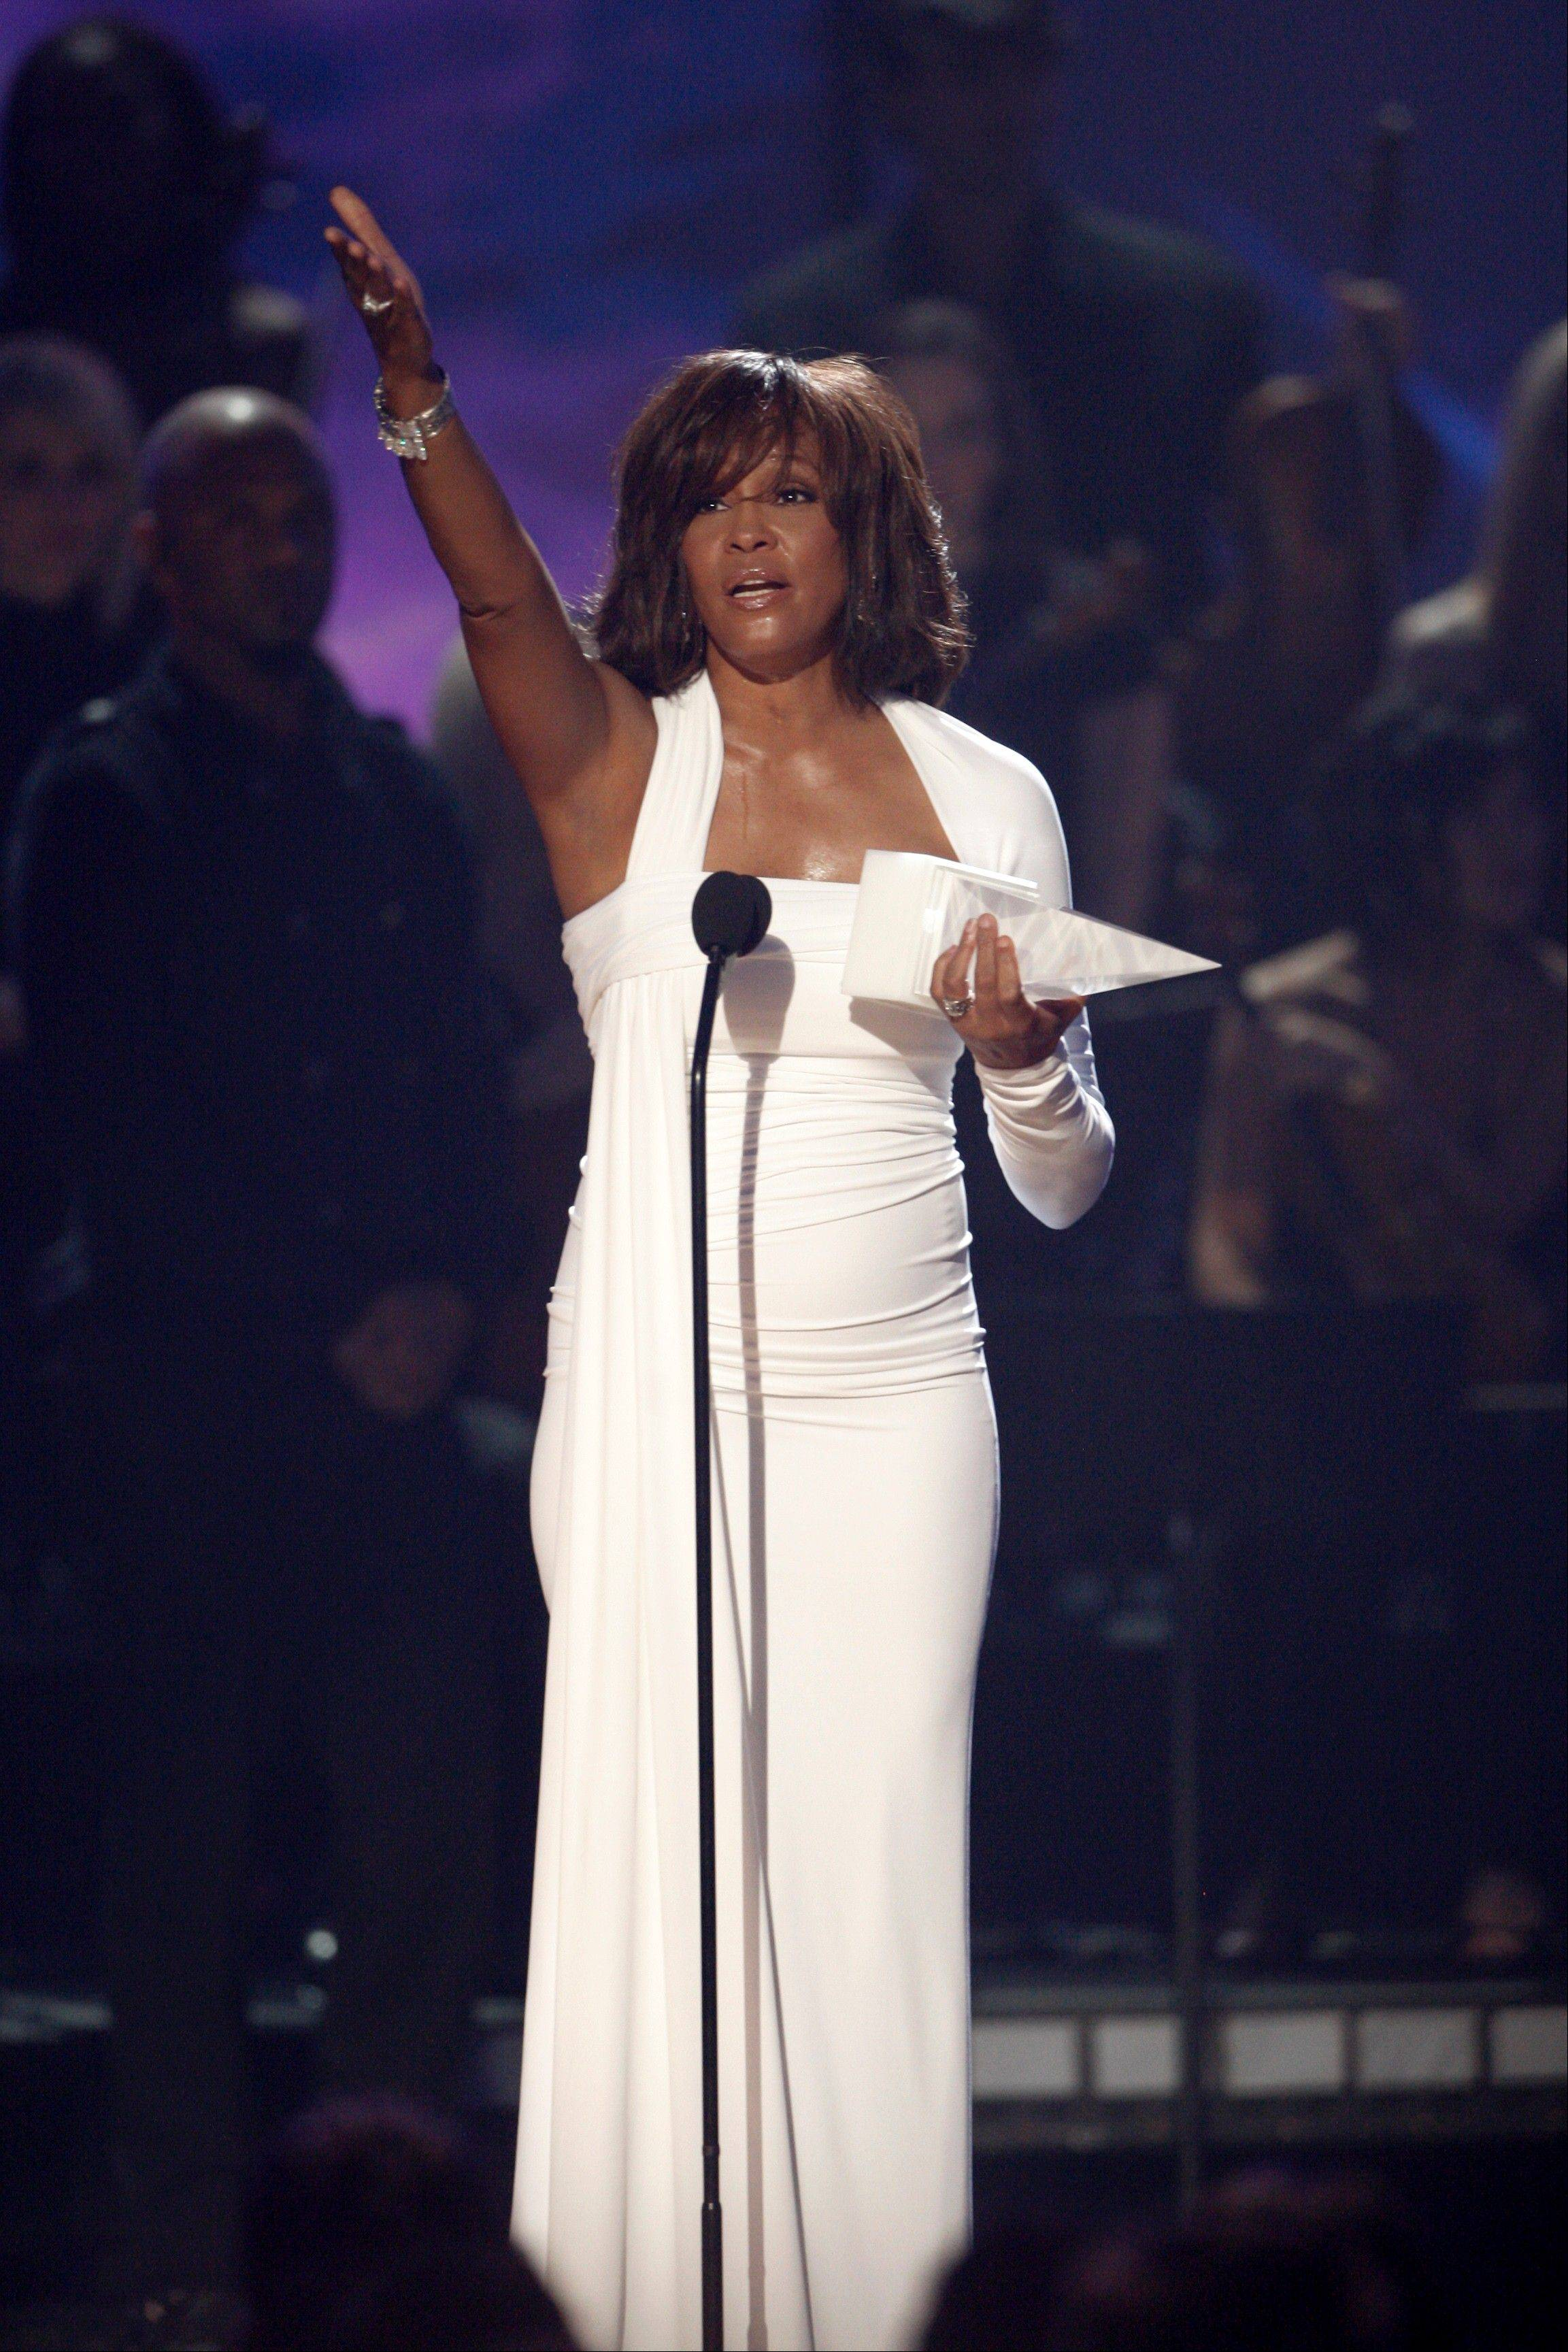 In this Nov. 22, 2009, file photo, artist Whitney Houston receives the International Artist Award onstage at the 37th Annual American Music Awards in Los Angeles.